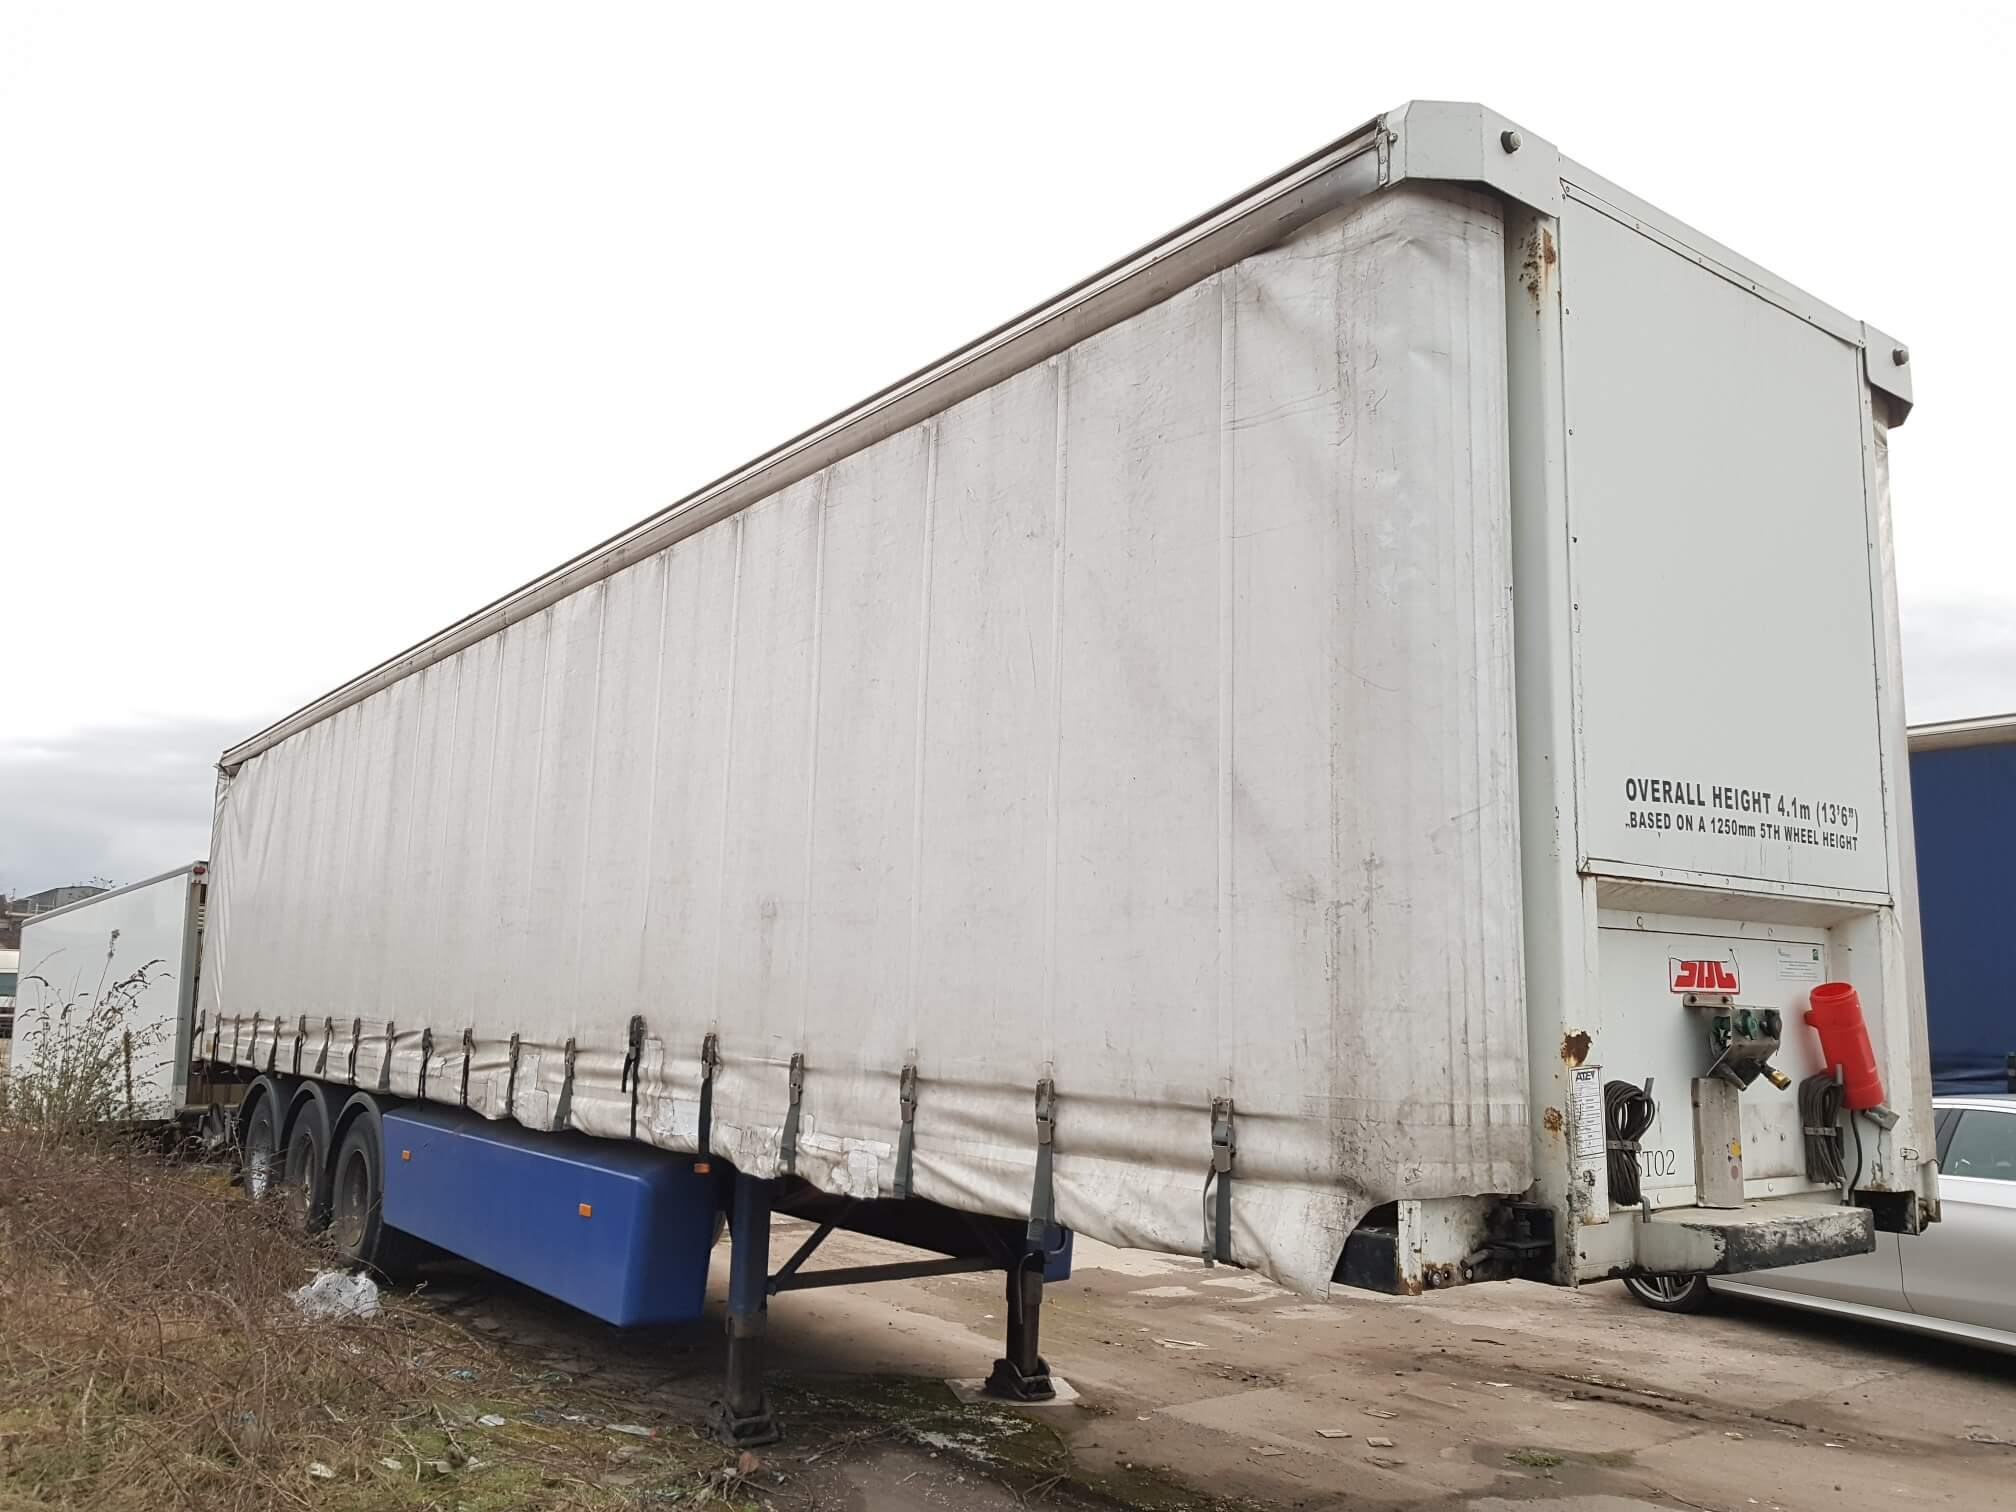 2006 SDC 4.05m tail lift curtainsider. ROR disc brake axles, 2.51m side aperture, 4 sliding side posts per side, Maxon 1500kg retractable tail lift, raise lower valve facility, Omega floor, internal straps, MOT November 2019. £3950 + VAT to take away.